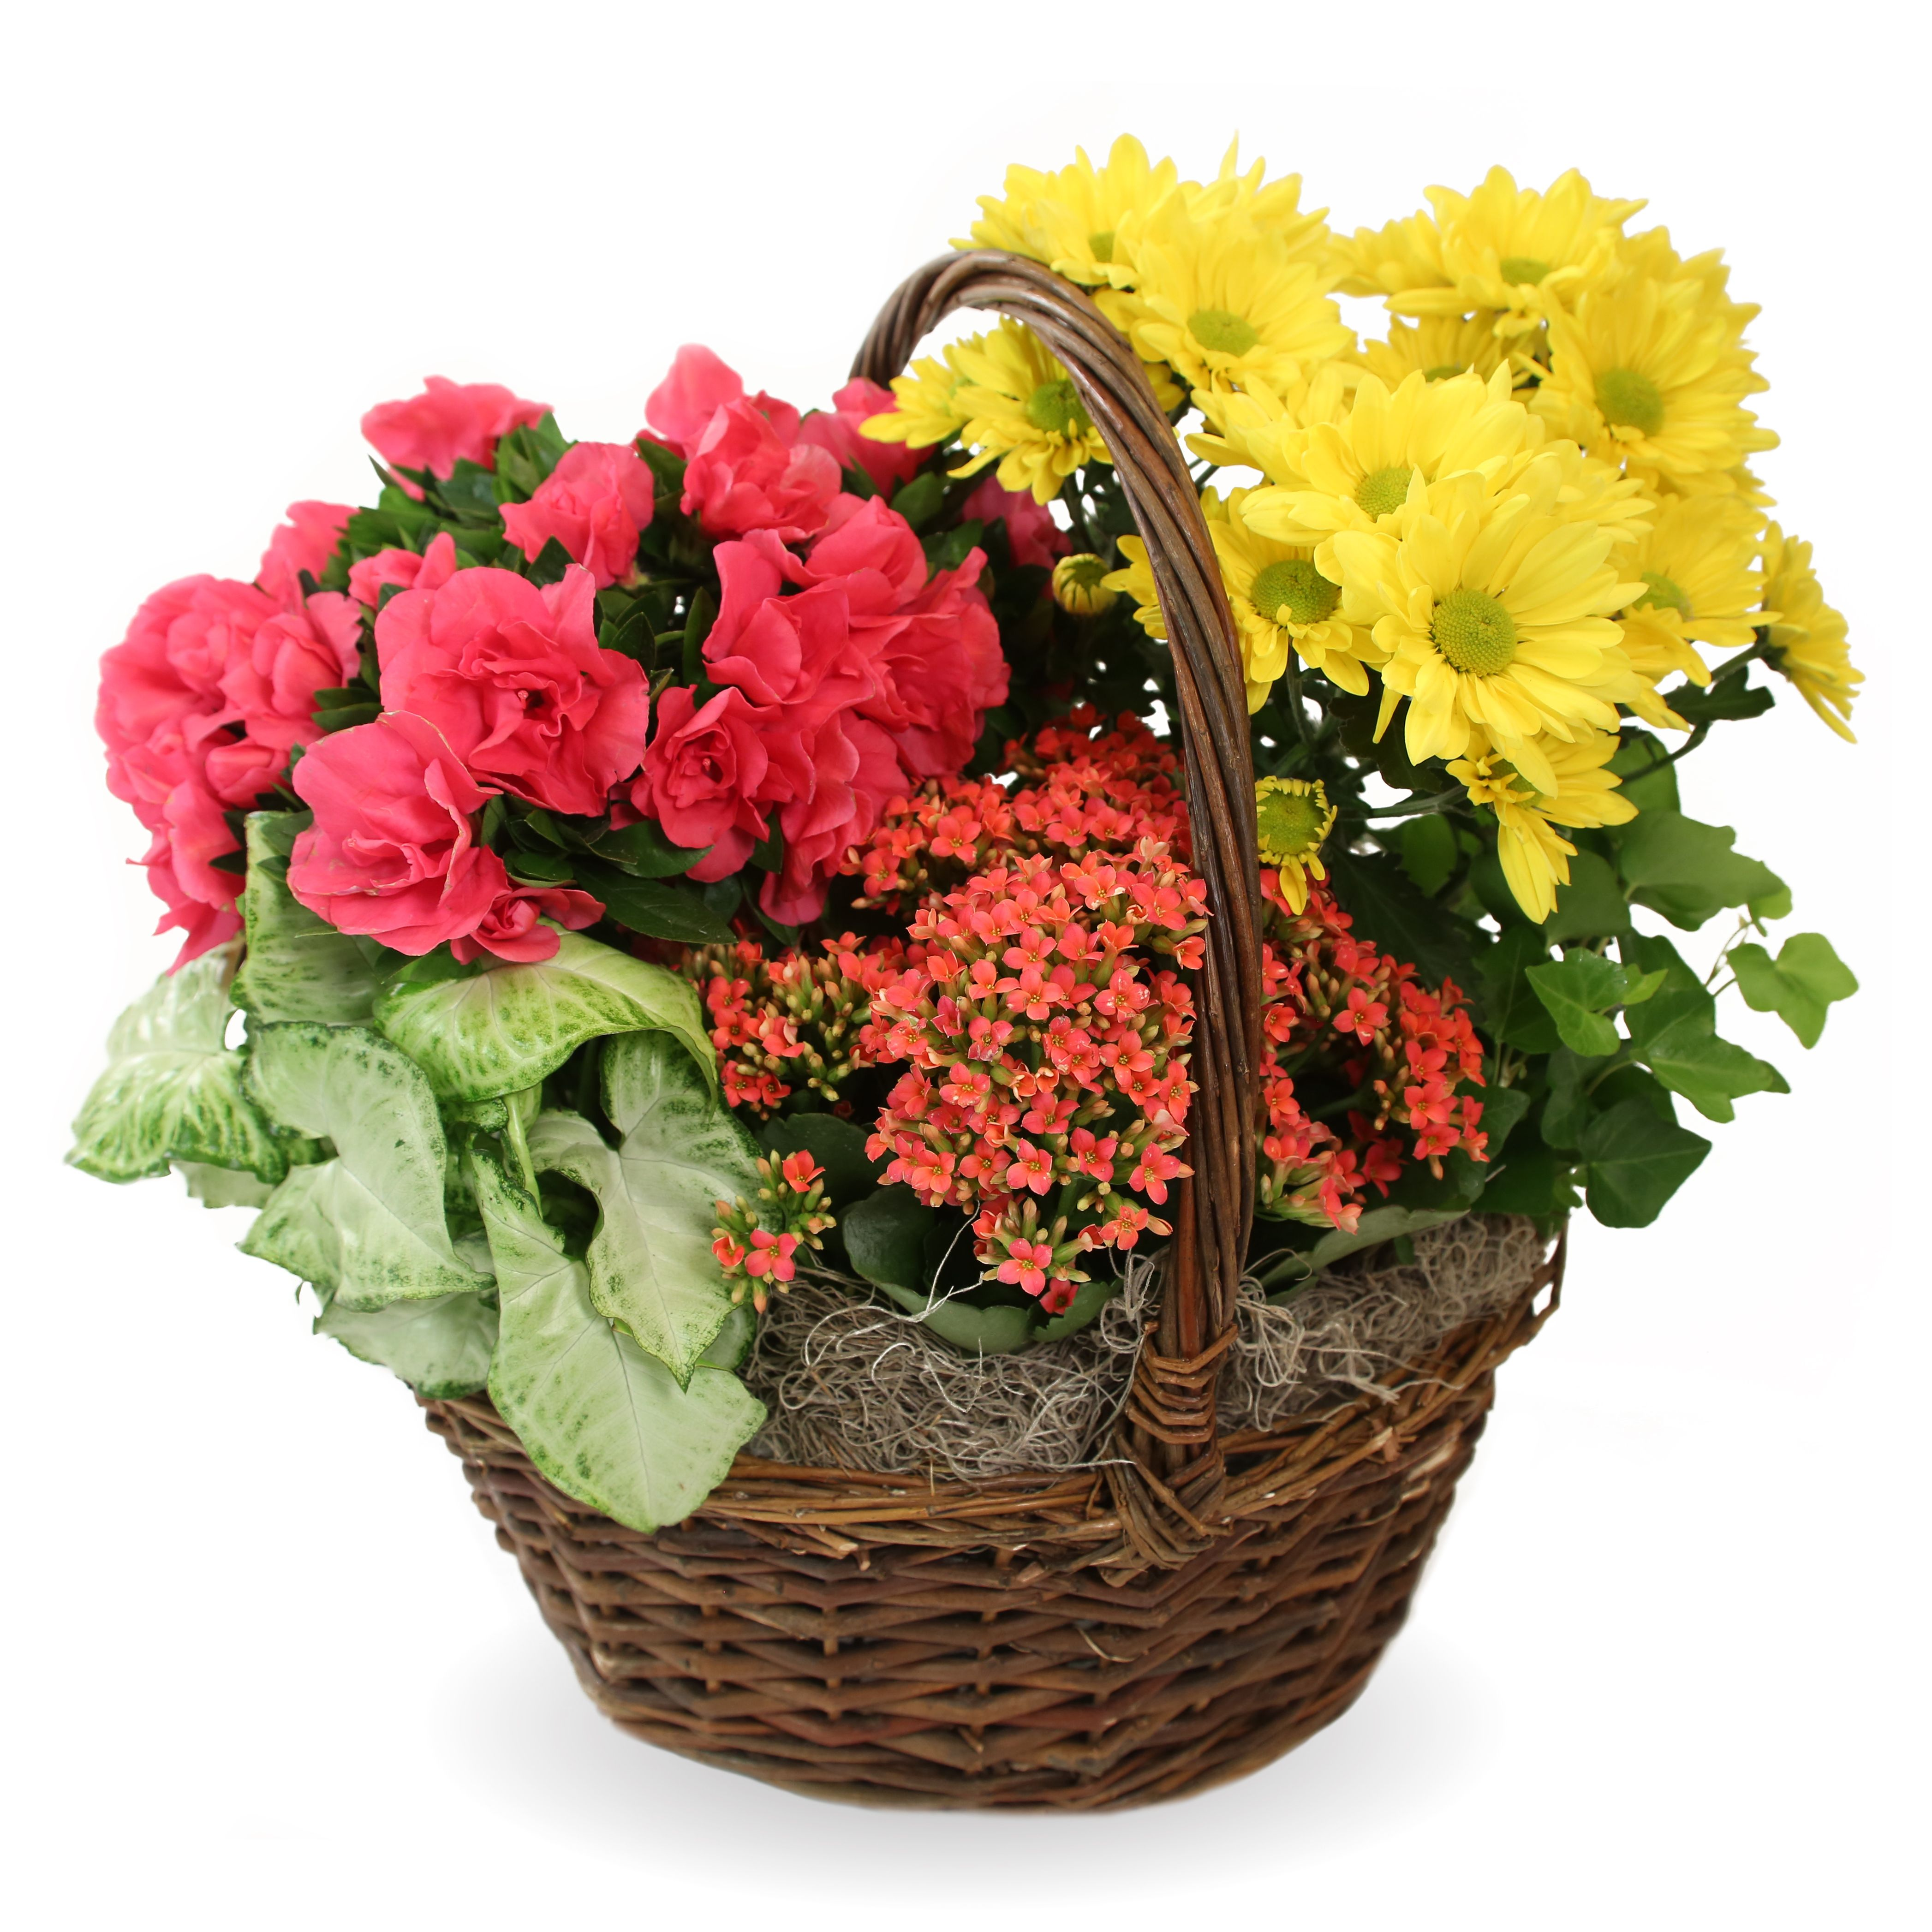 Funeral home website features funeral floral